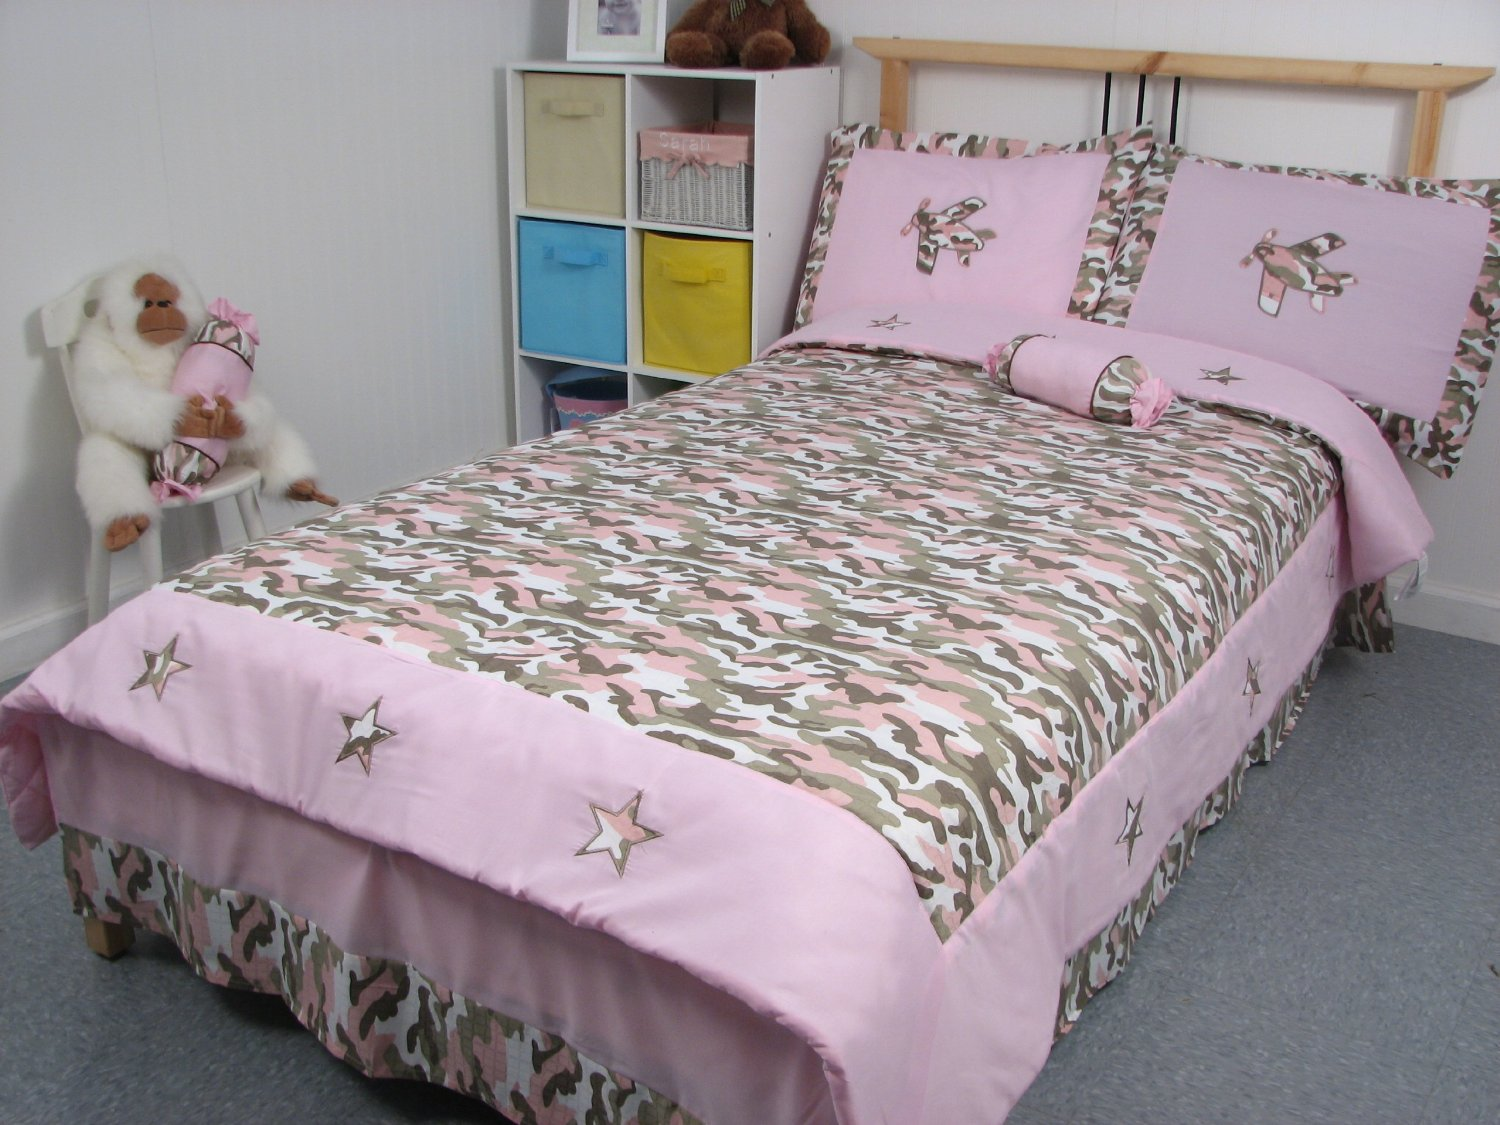 Pink Camo/Camouflage Comforters and Bedding for Girls & Teens